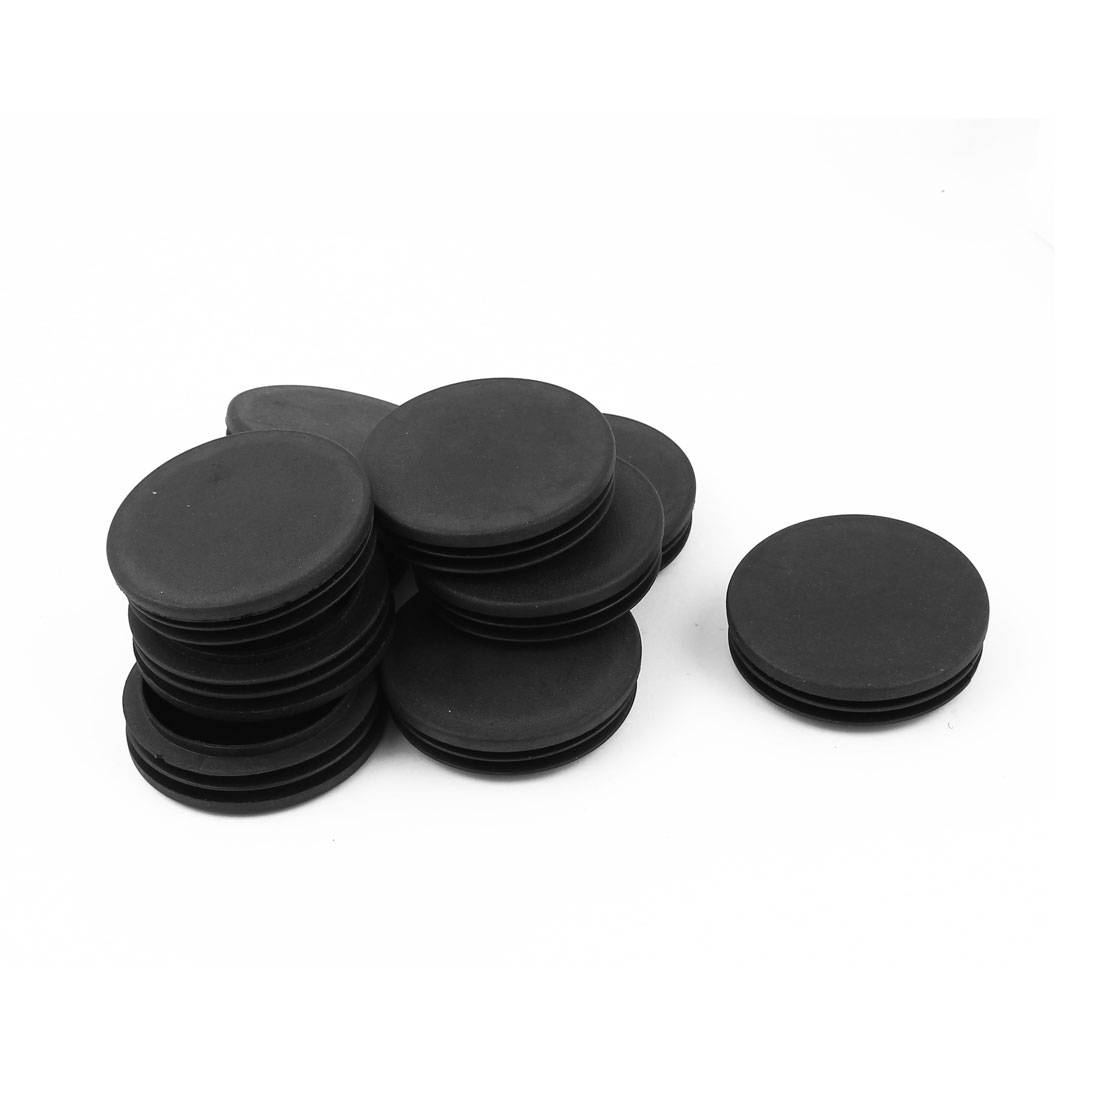 10 Pcs Plastic 60mm Dia Round Tubing Tube Insert Blanking End Caps